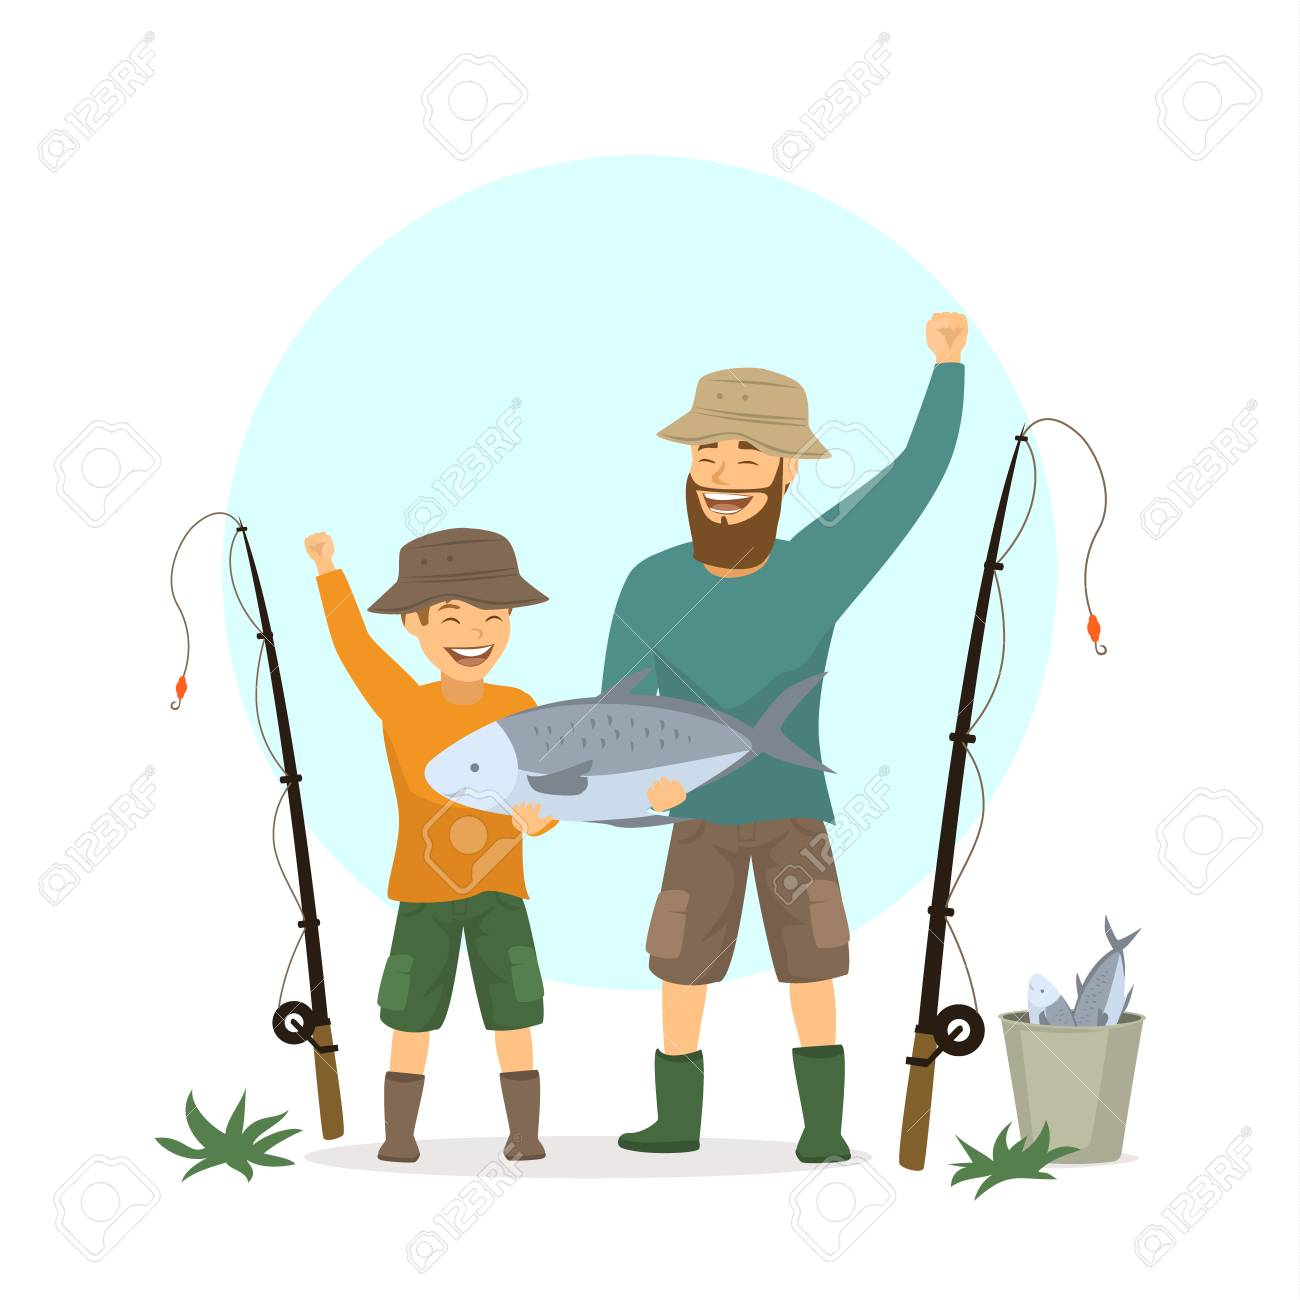 Happy excited father and son fishing scene, isolated vector illustration..